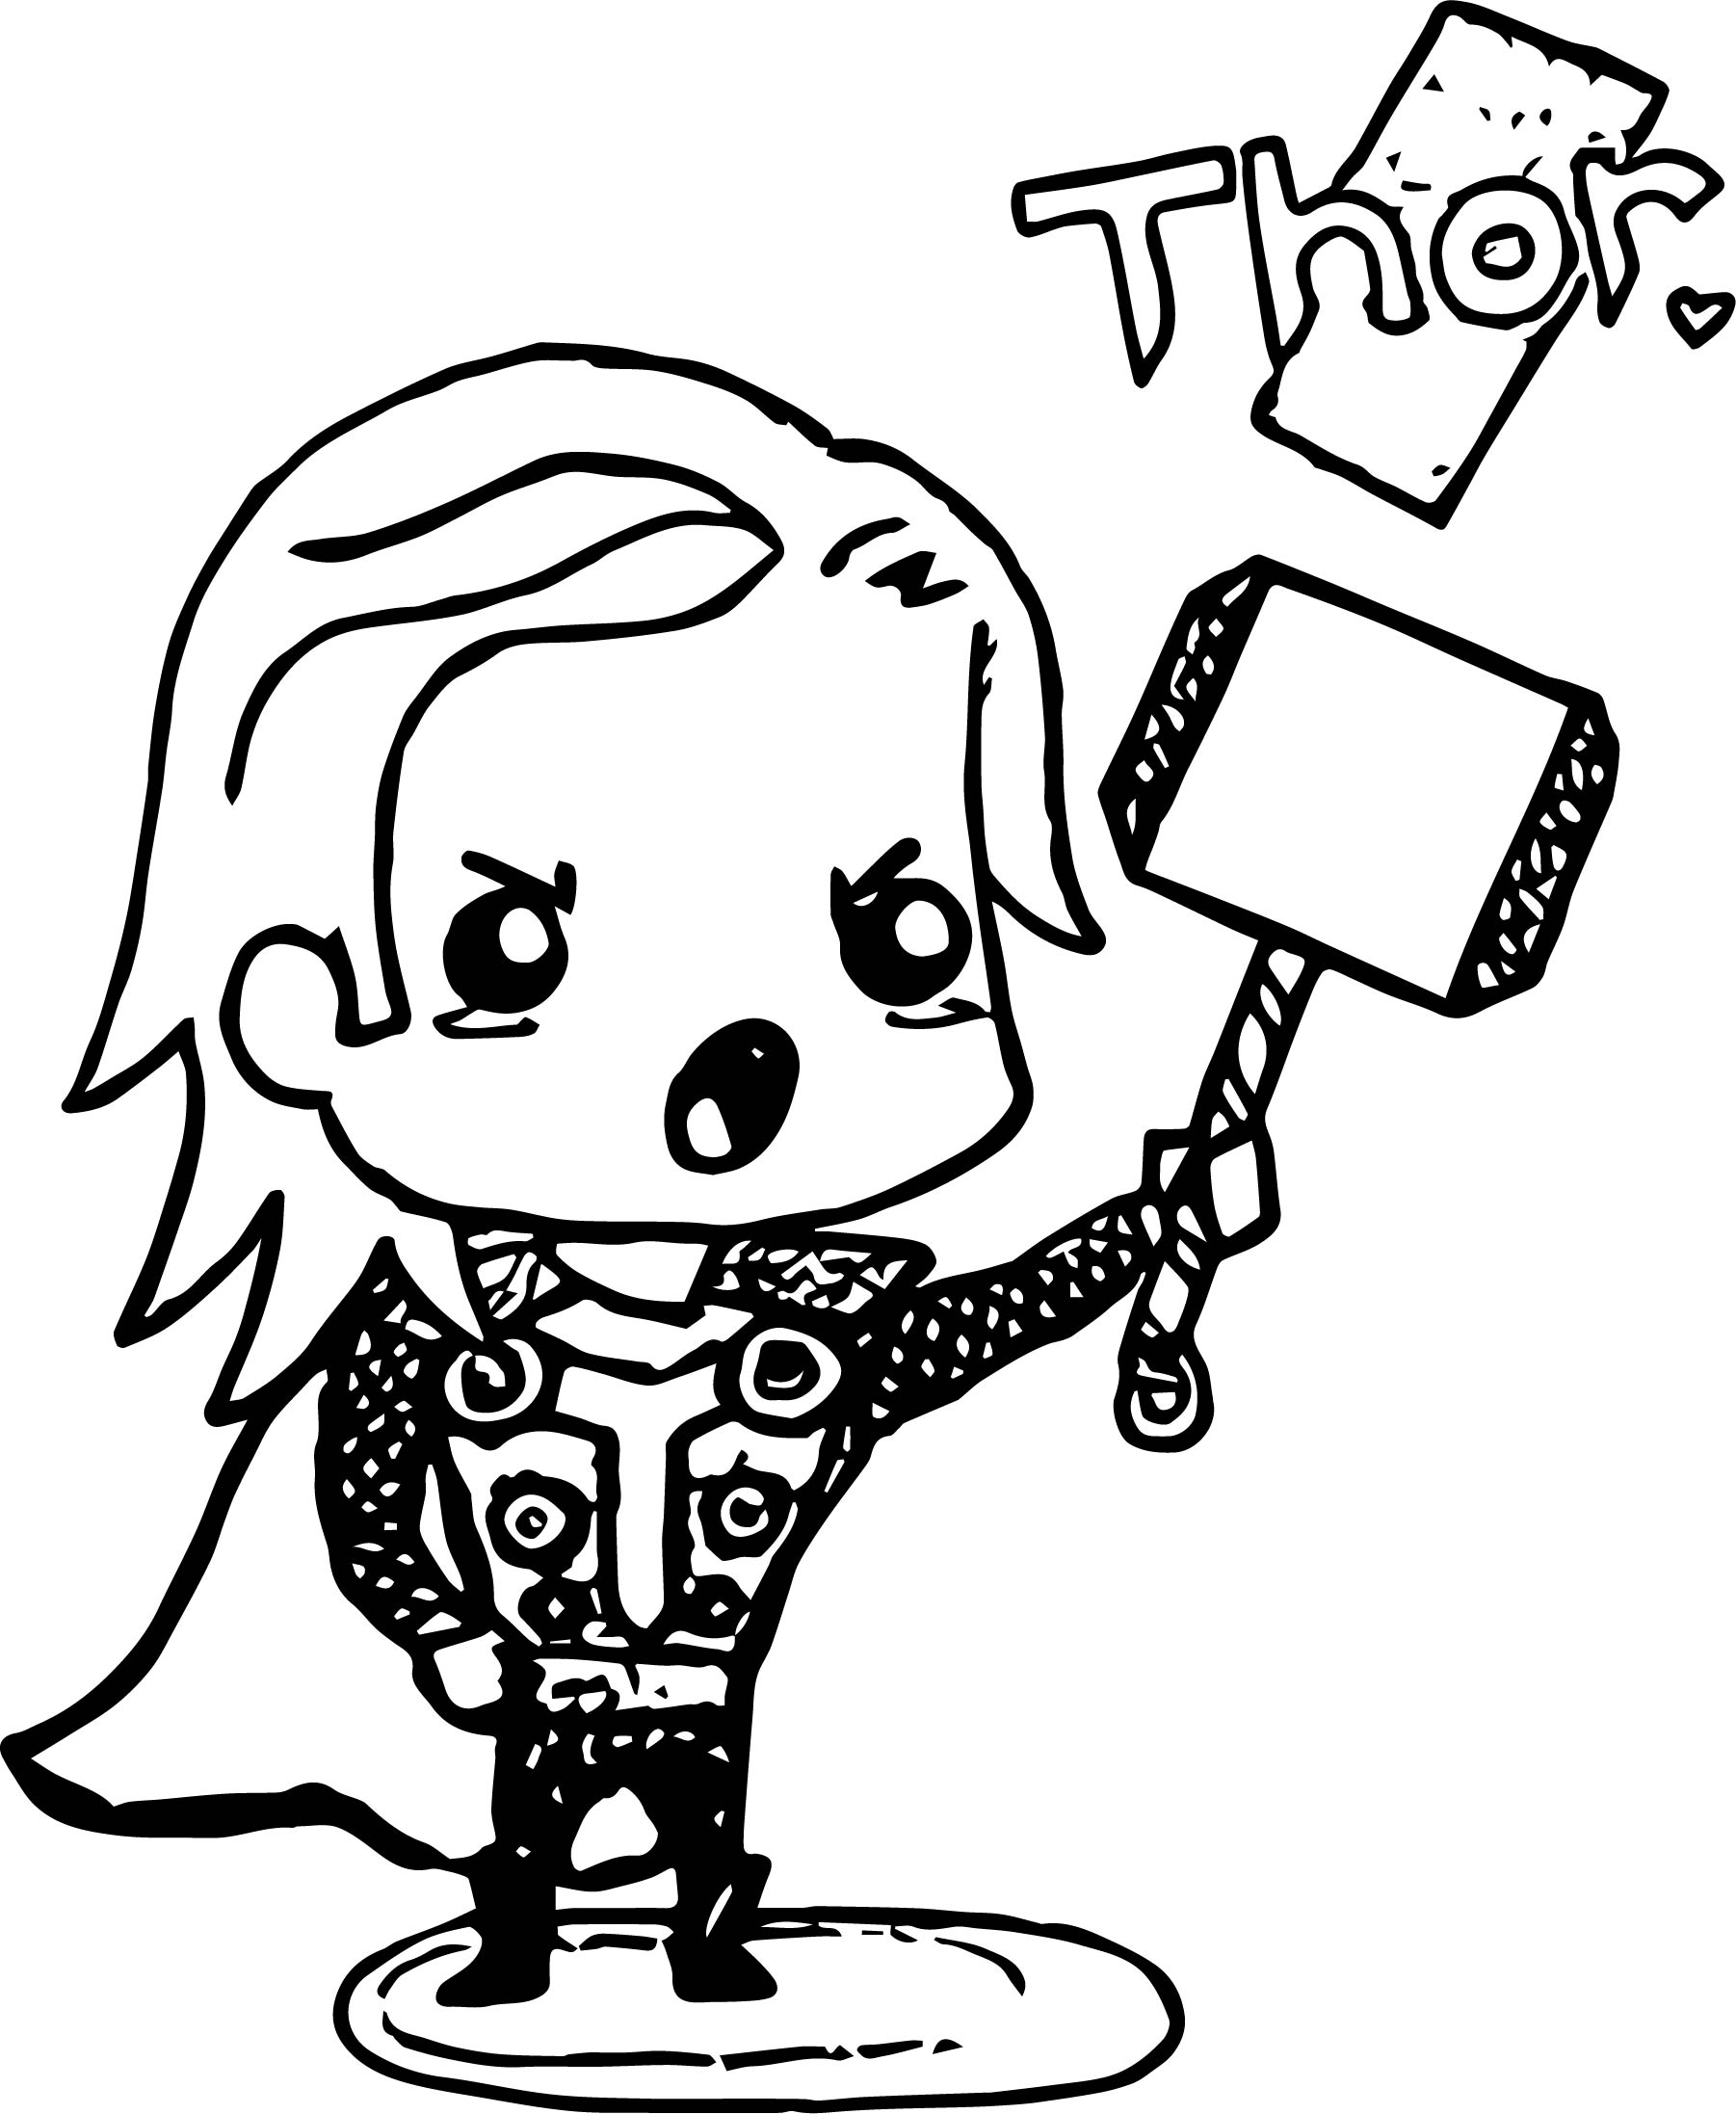 Thor Avengers Drawing | Free download on ClipArtMag